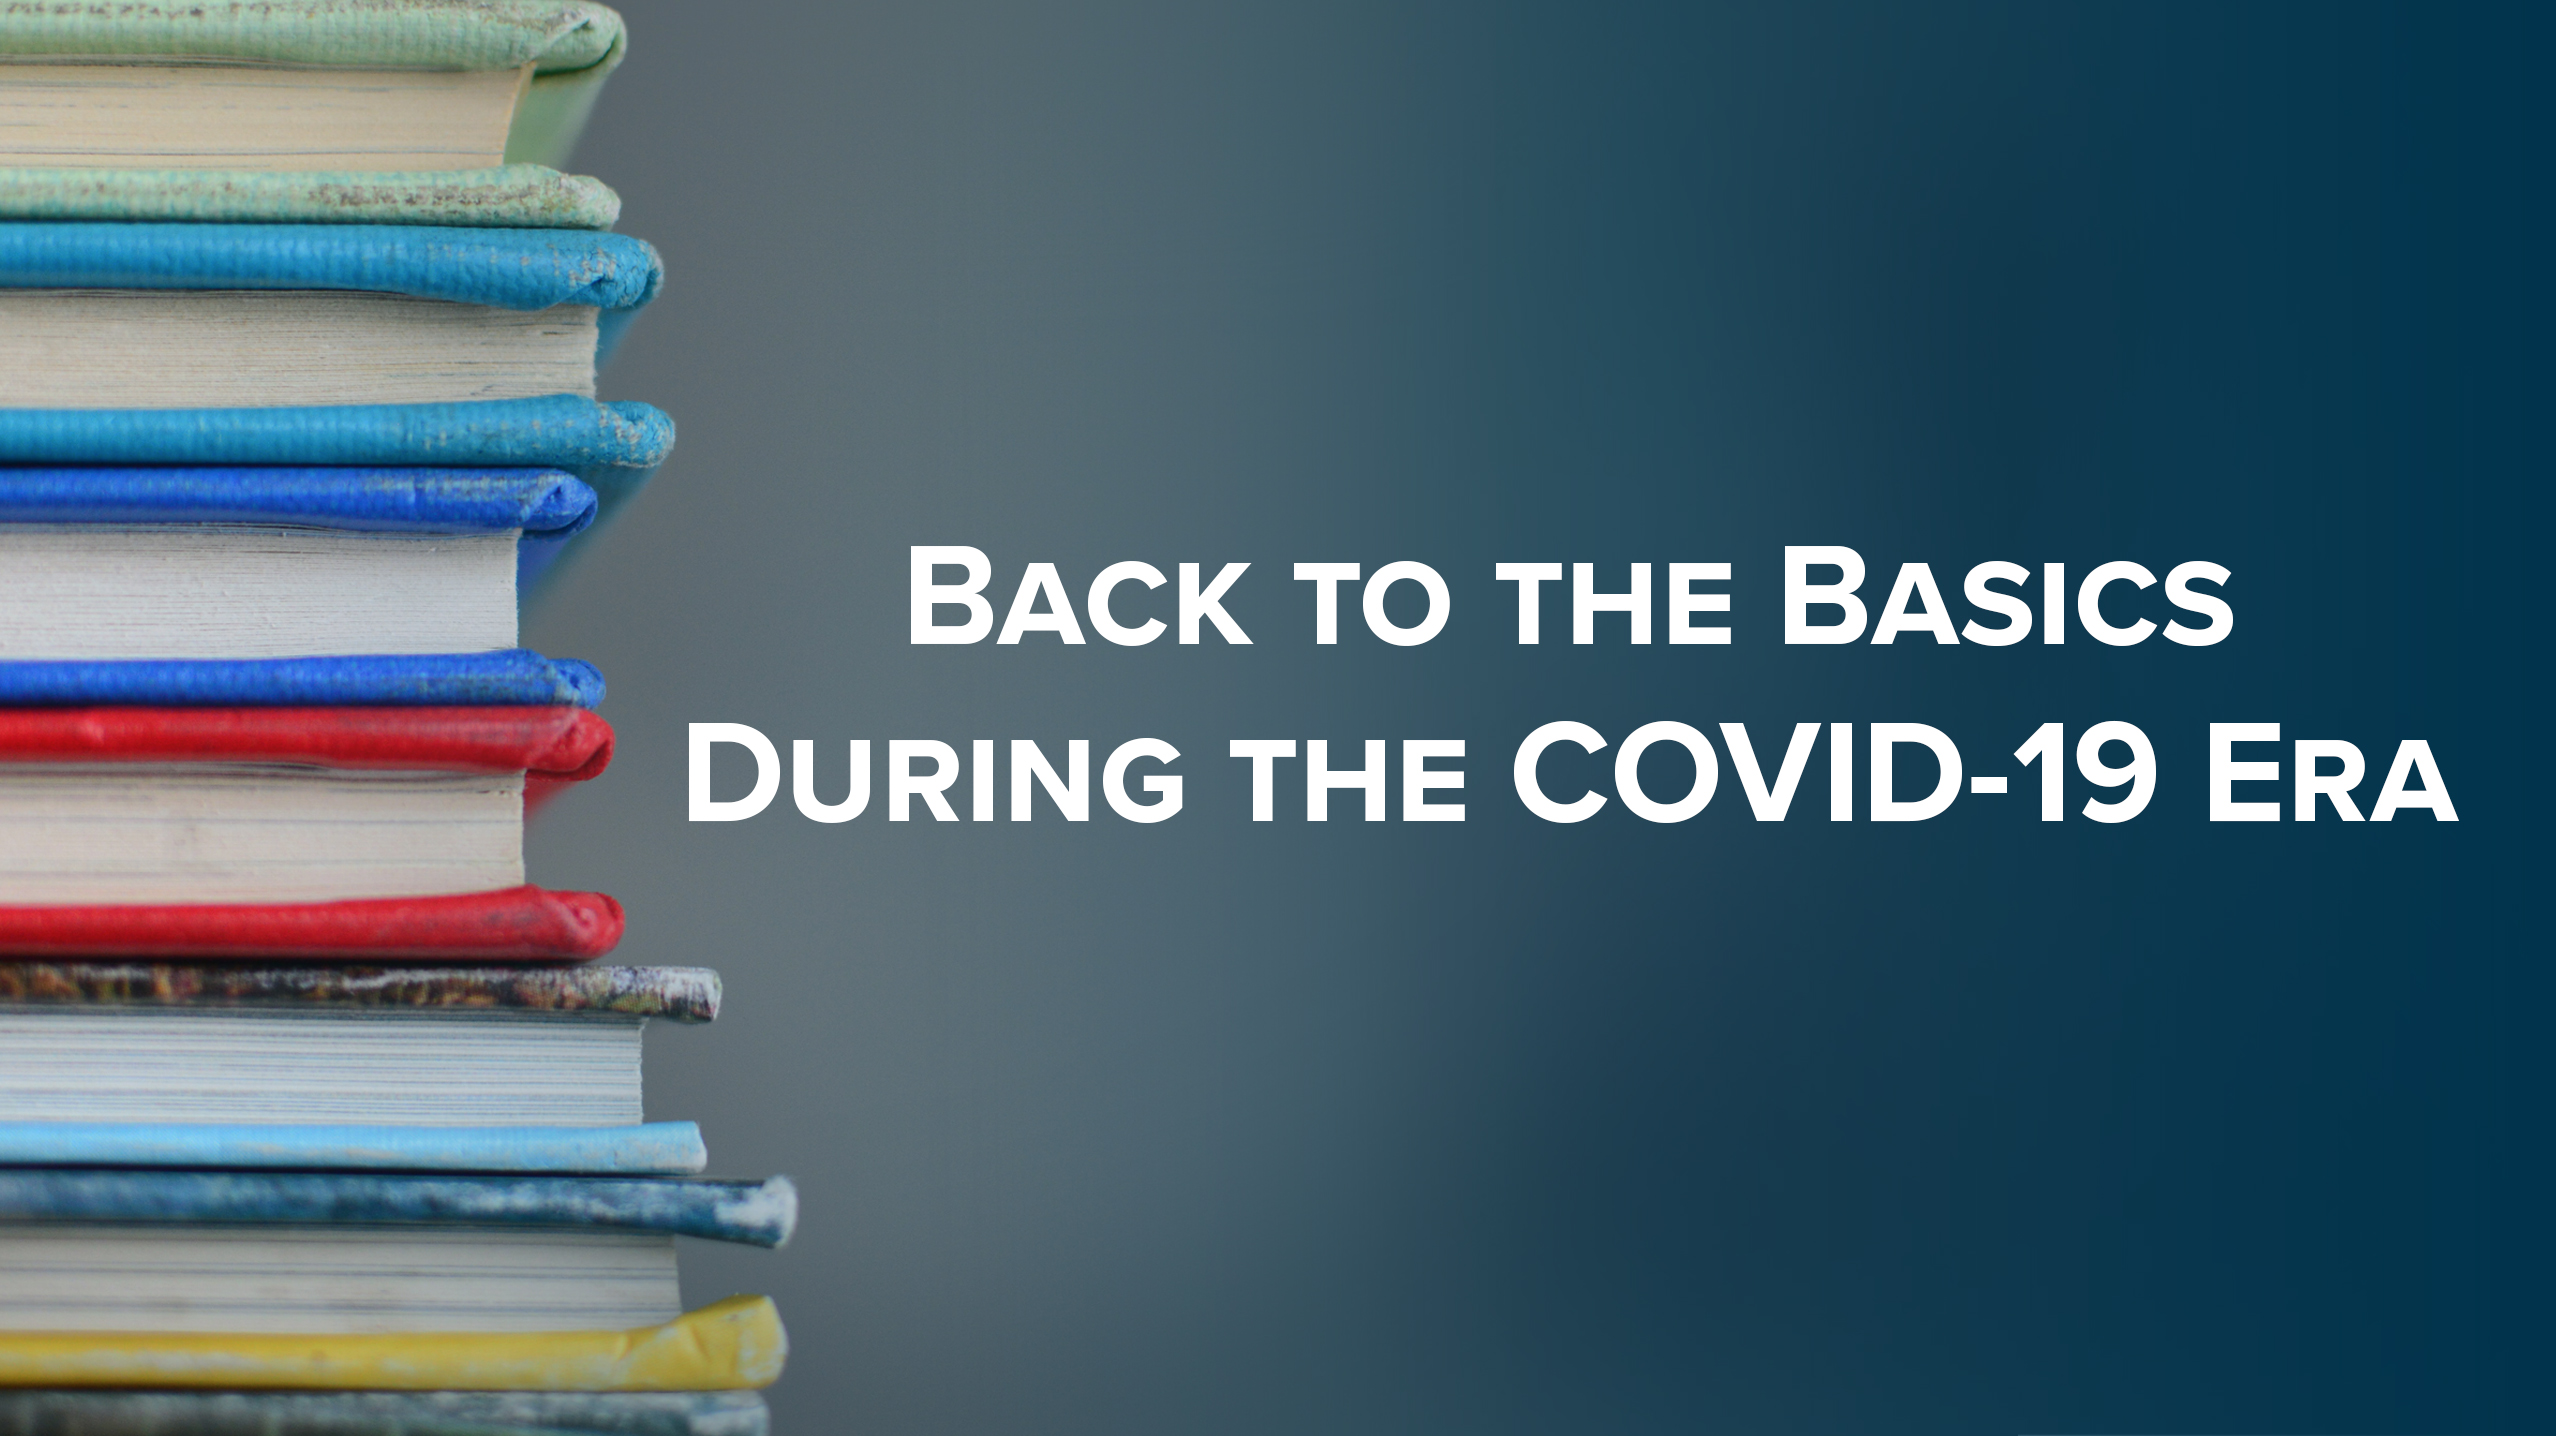 BacktoBasics_COVID19_blog-